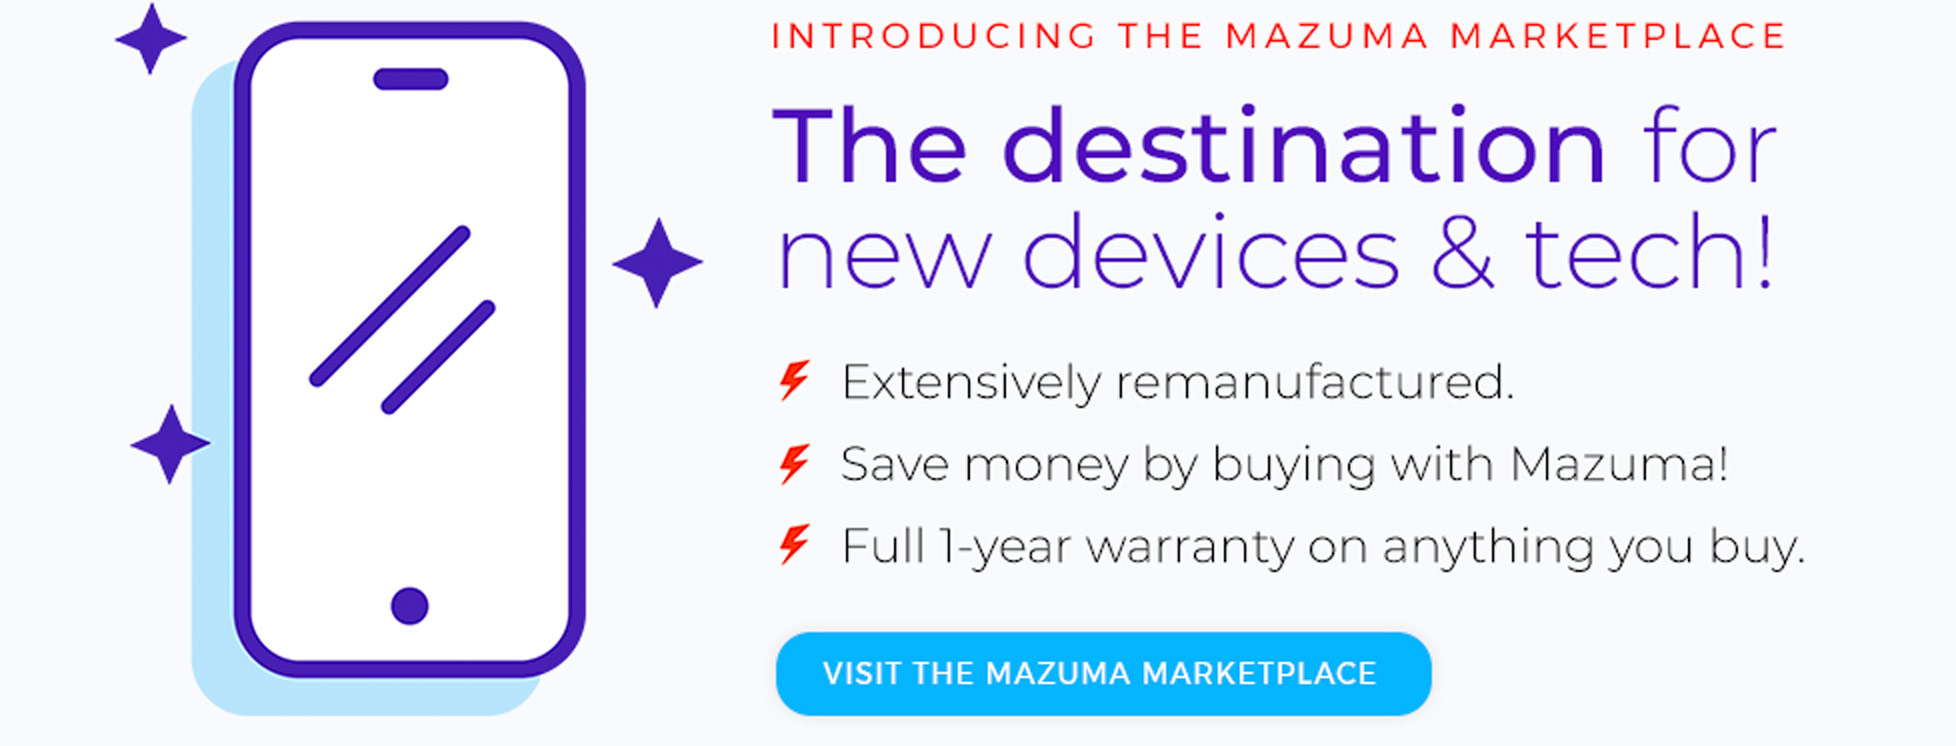 Introducing the Mazuma Marketplace - The destination for new devices & tech!